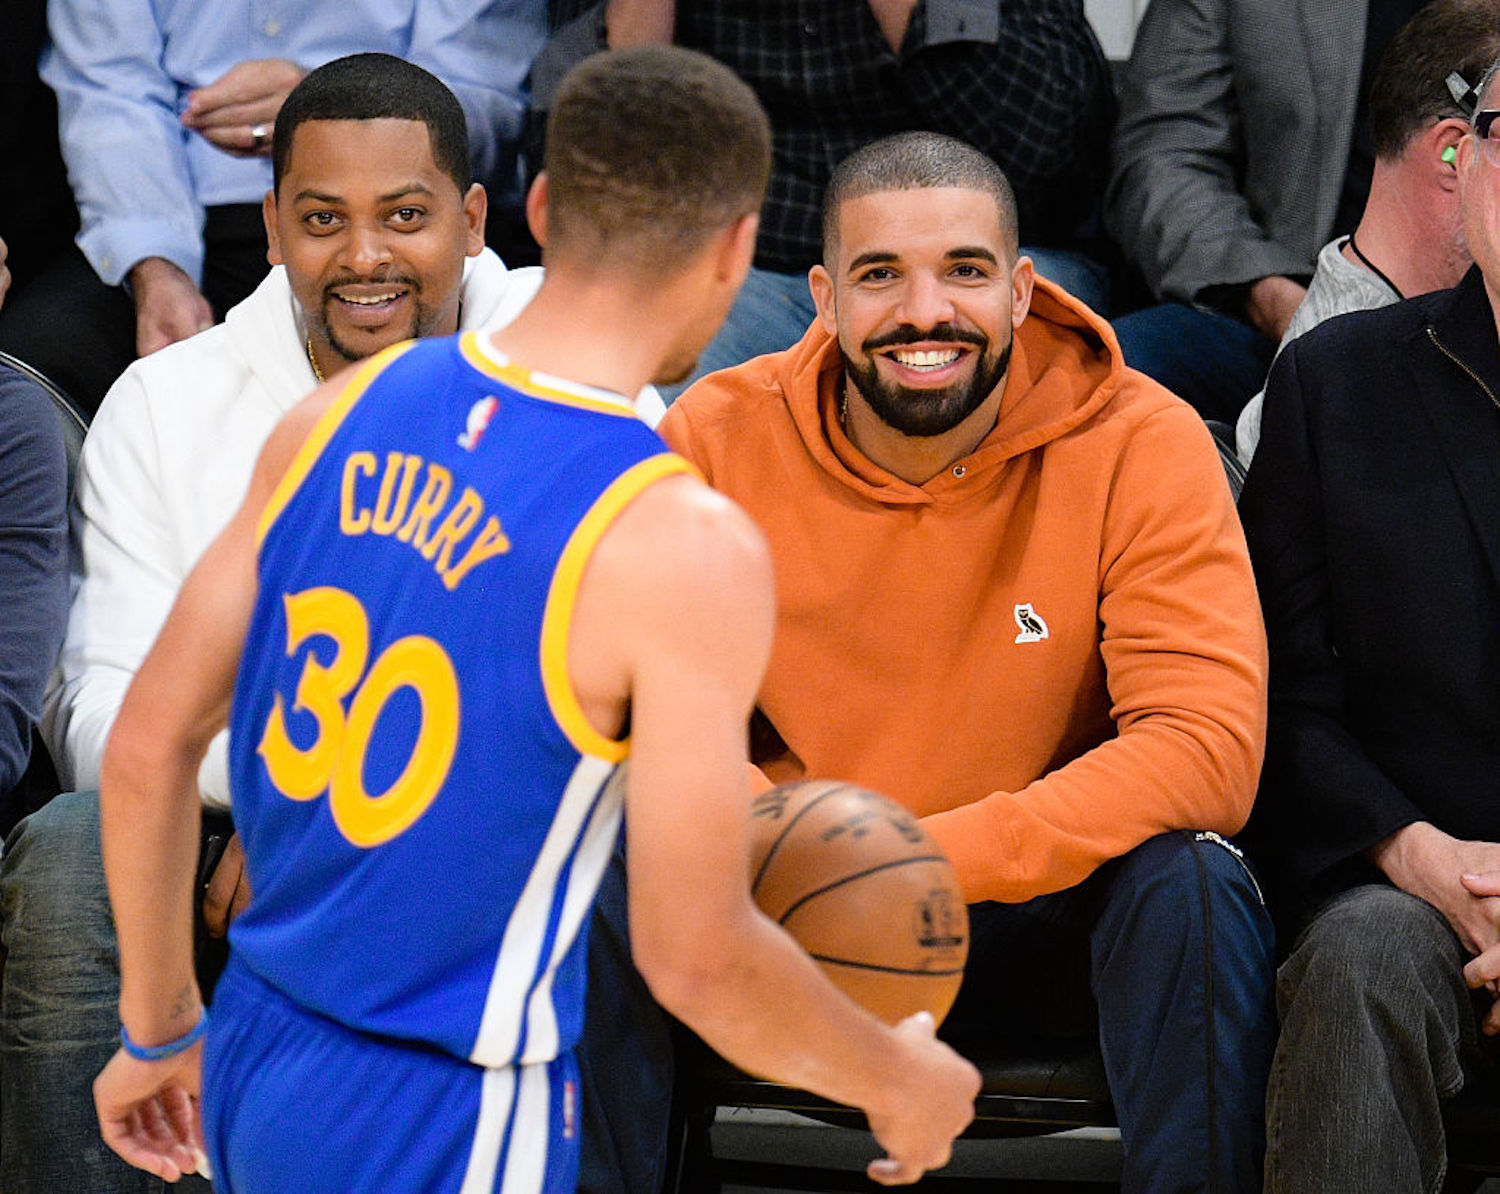 Steve Kerr dished out a $500 fine to famous rapper Drake after he made Stephen Curry and Draymond Green late to the team plane.